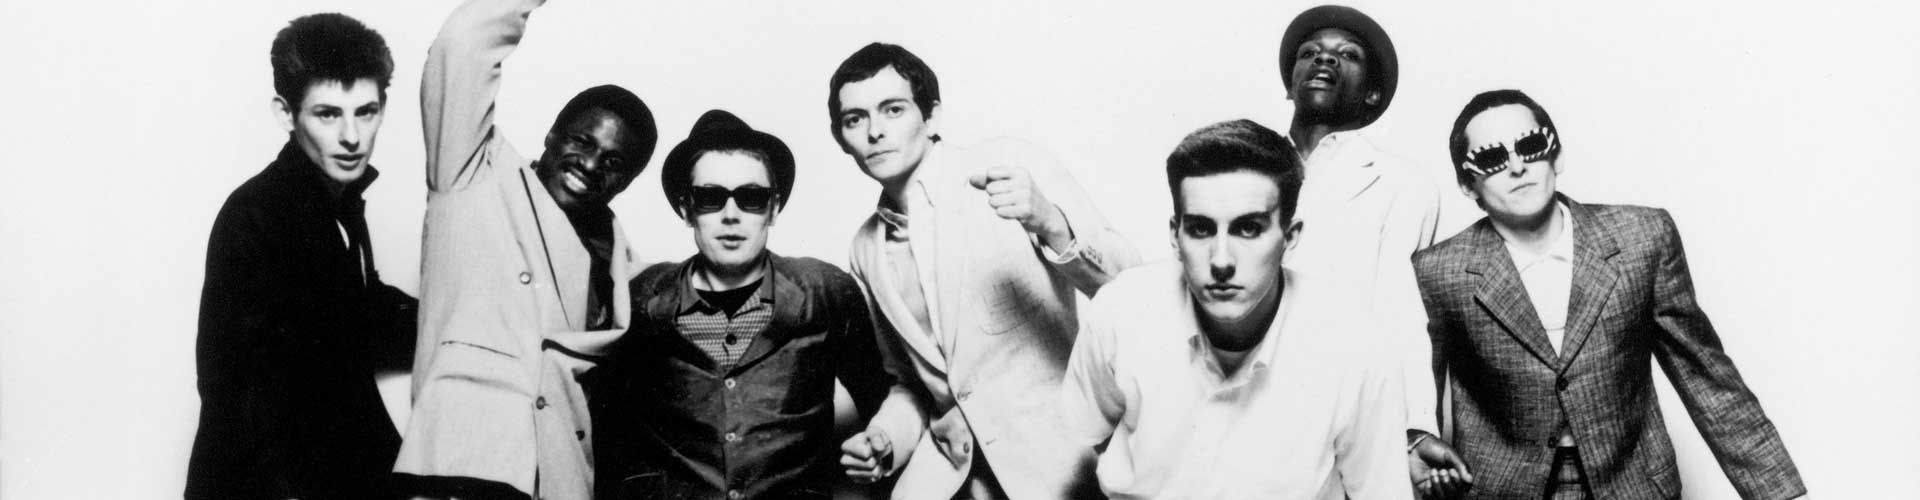 2 Tone on TV: The ska revival's greatest hits